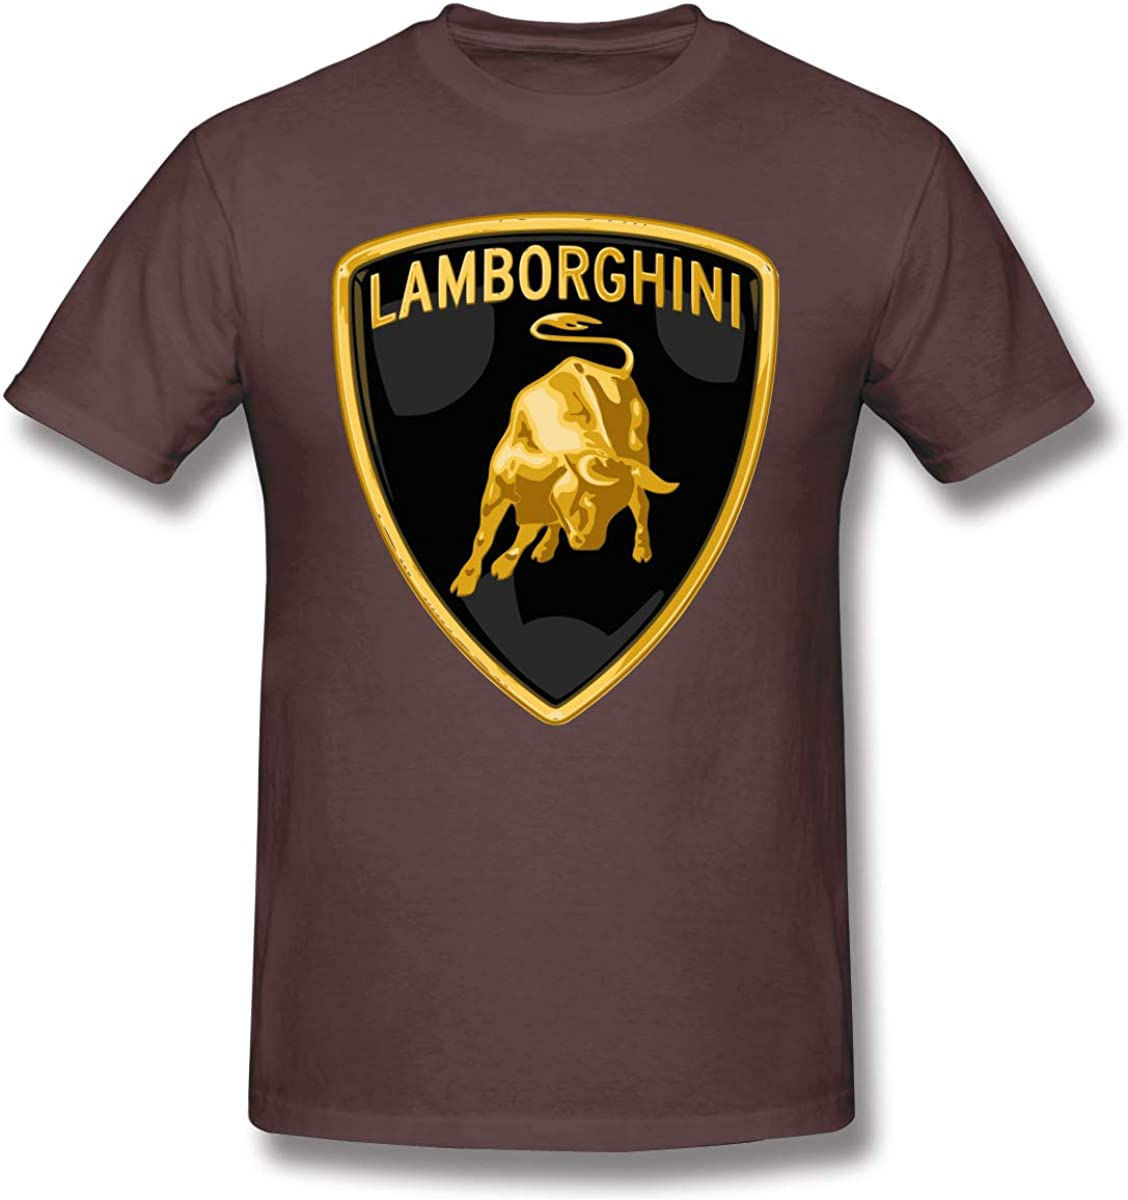 DavidBill T-Shirt for Men Lamborghini Logo Short Sleeve Tee